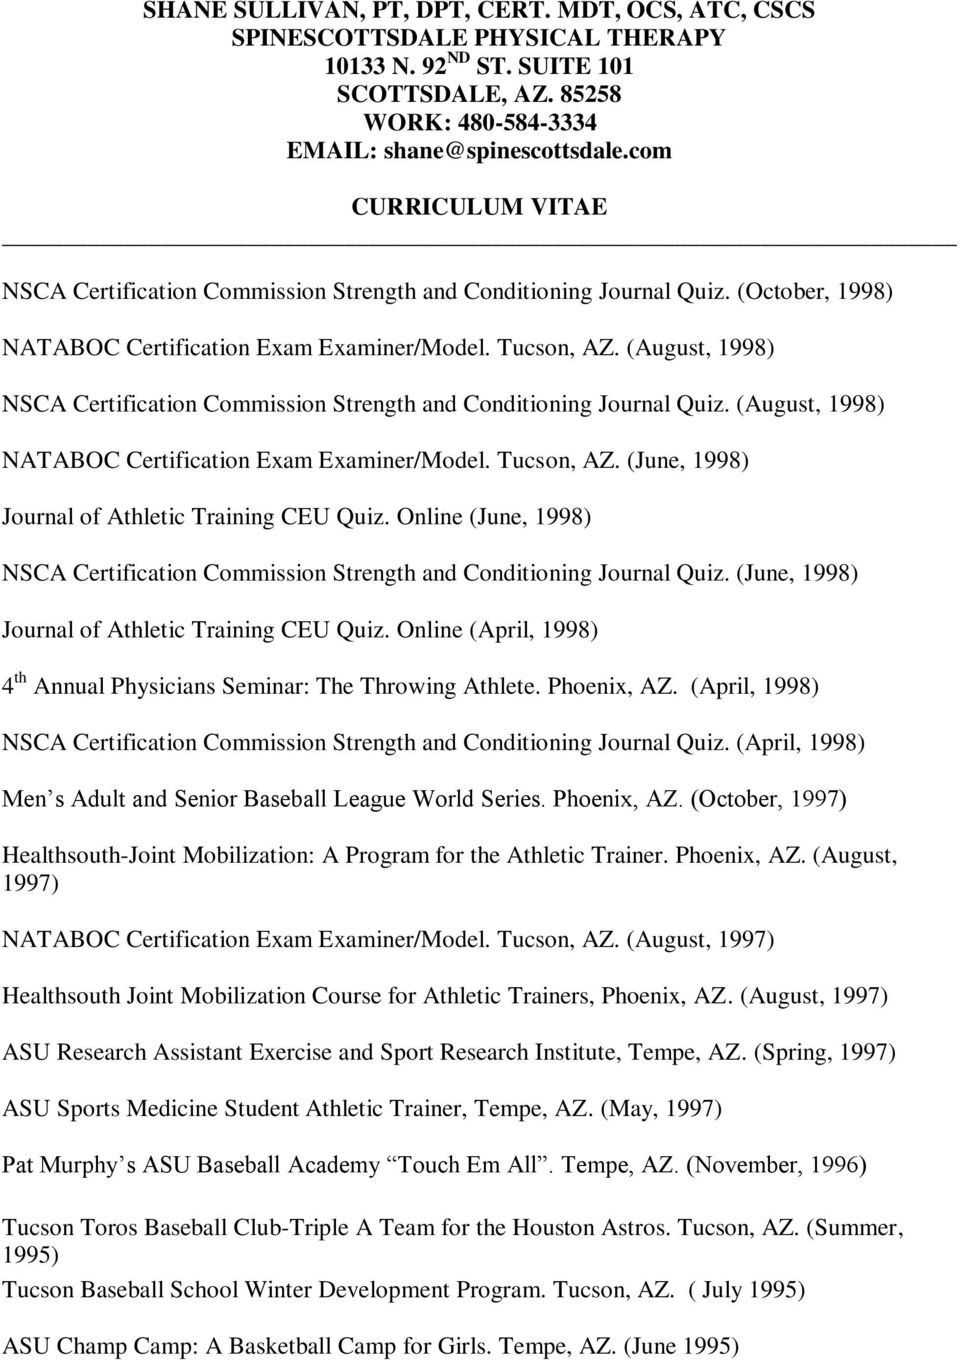 (June, 1998) Journal of Athletic Training CEU Quiz. Online (June, 1998) NSCA Certification Commission Strength and Conditioning Journal Quiz. (June, 1998) Journal of Athletic Training CEU Quiz.